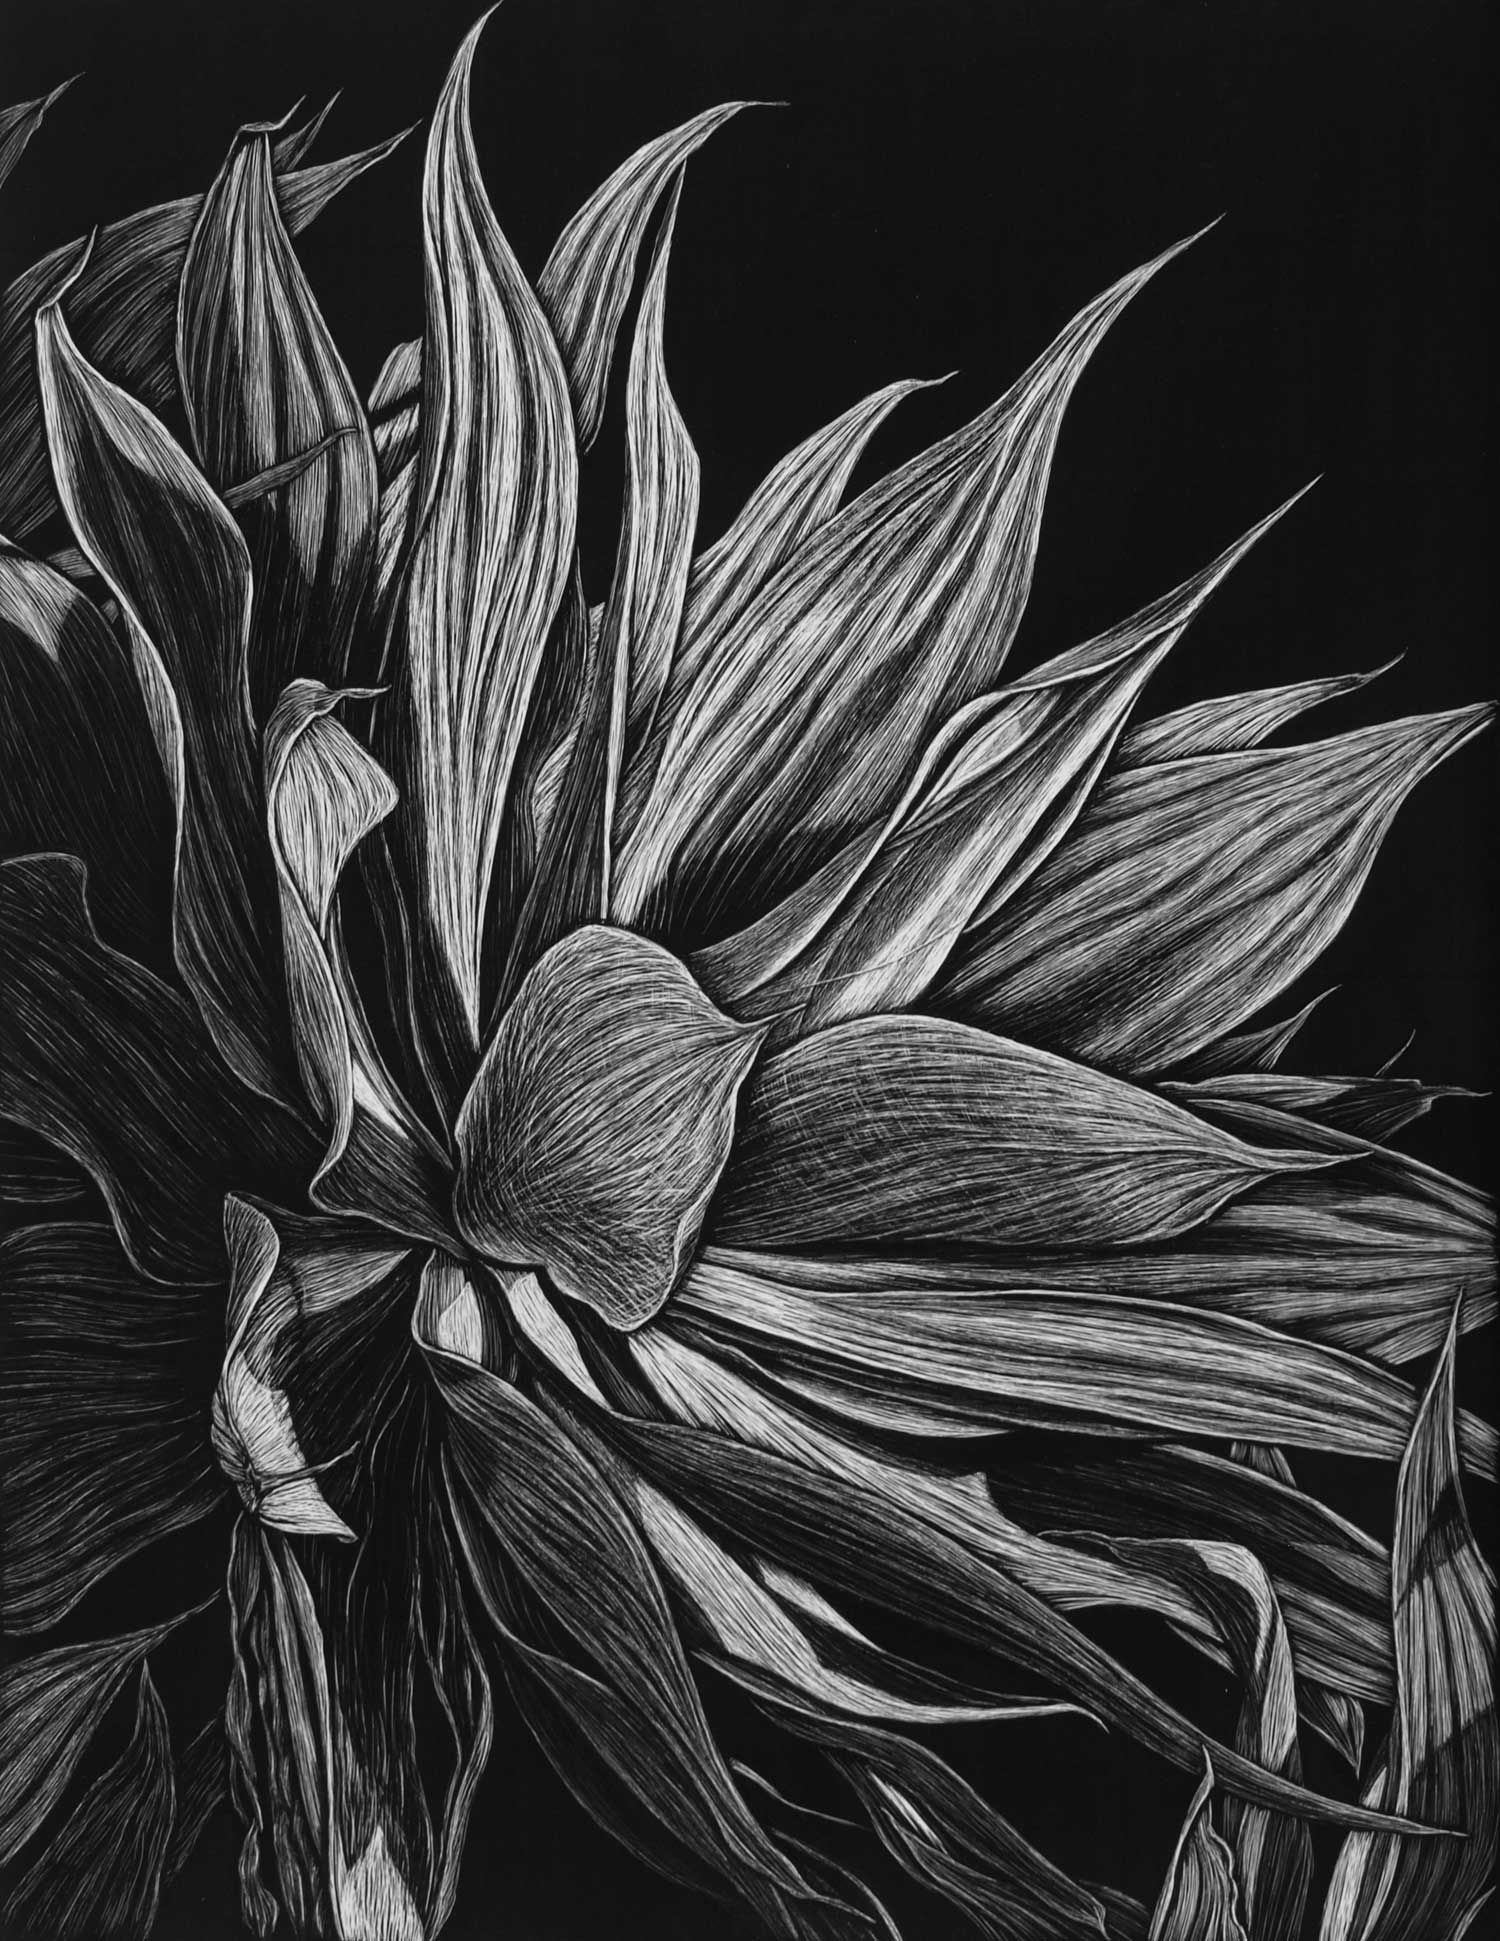 AGAVE, CLAREVILLE BEACH I  45.5 X 35.5 CM, EDITION OF 50  PIGMENT ON COTTON RAG PAPER  $800